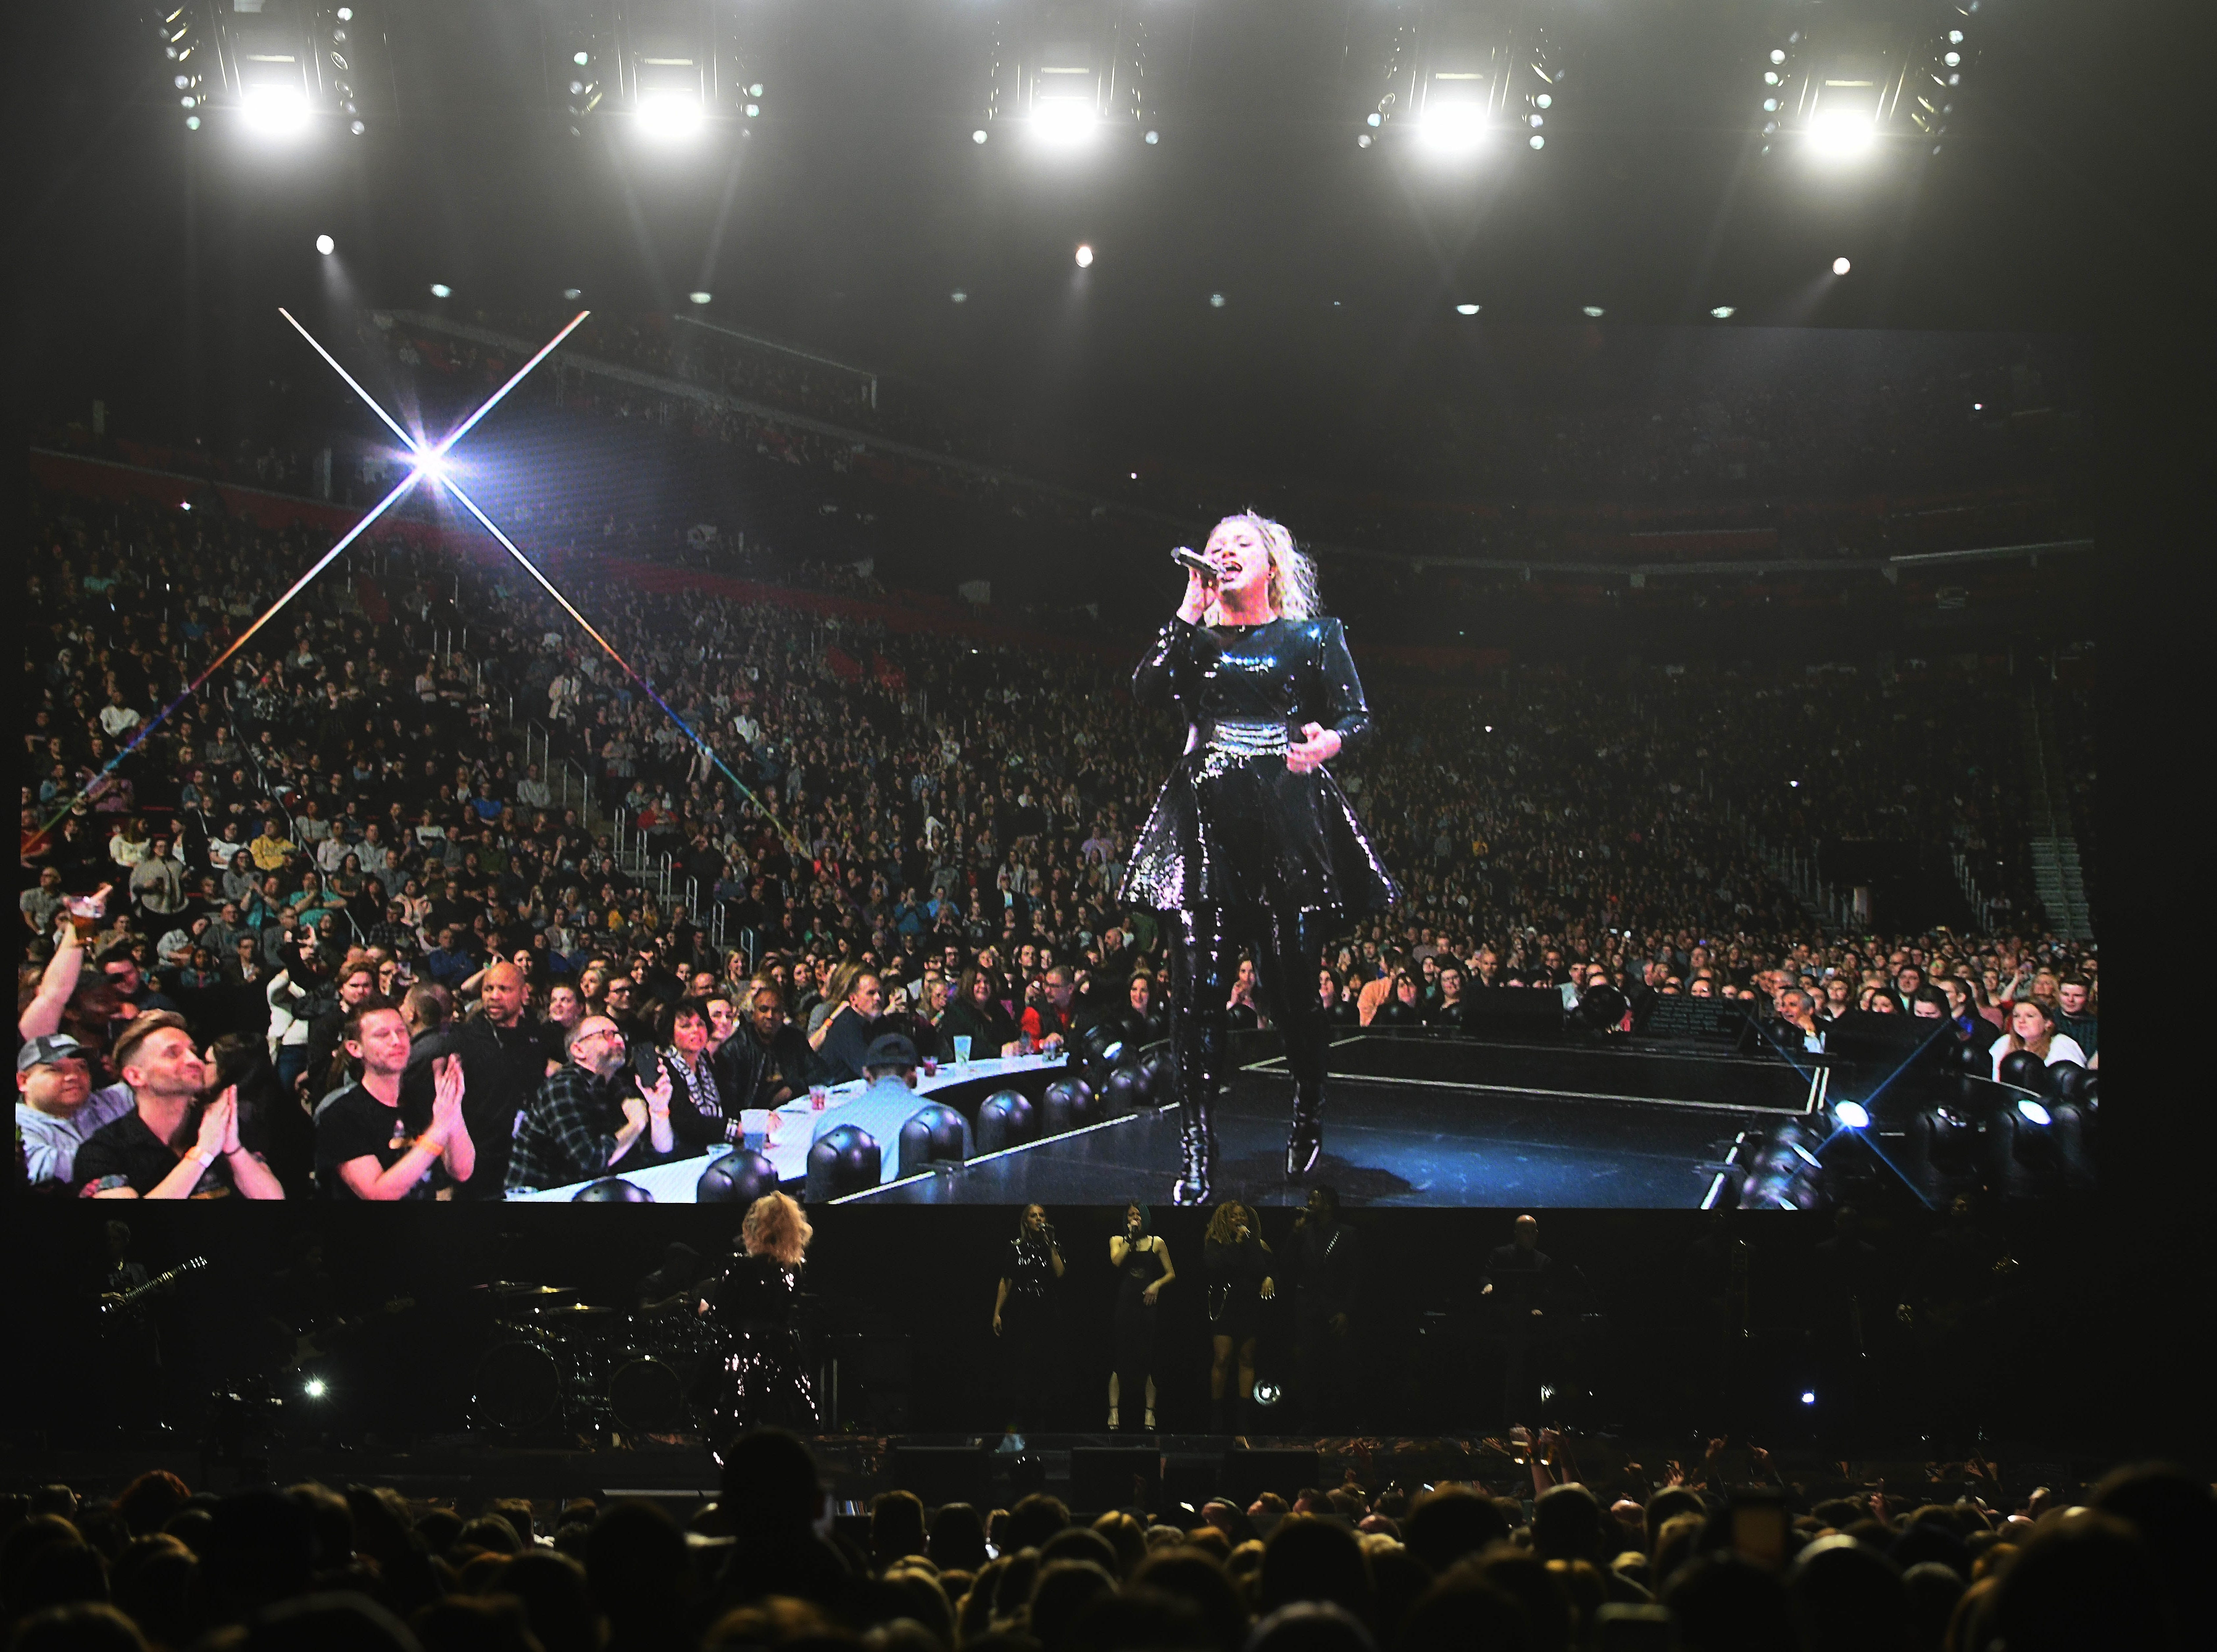 Kelly Clarkson's 'Meaning of Life' tour performs at Little Caesars Arena in Detroit, Michigan on February 21, 2019.